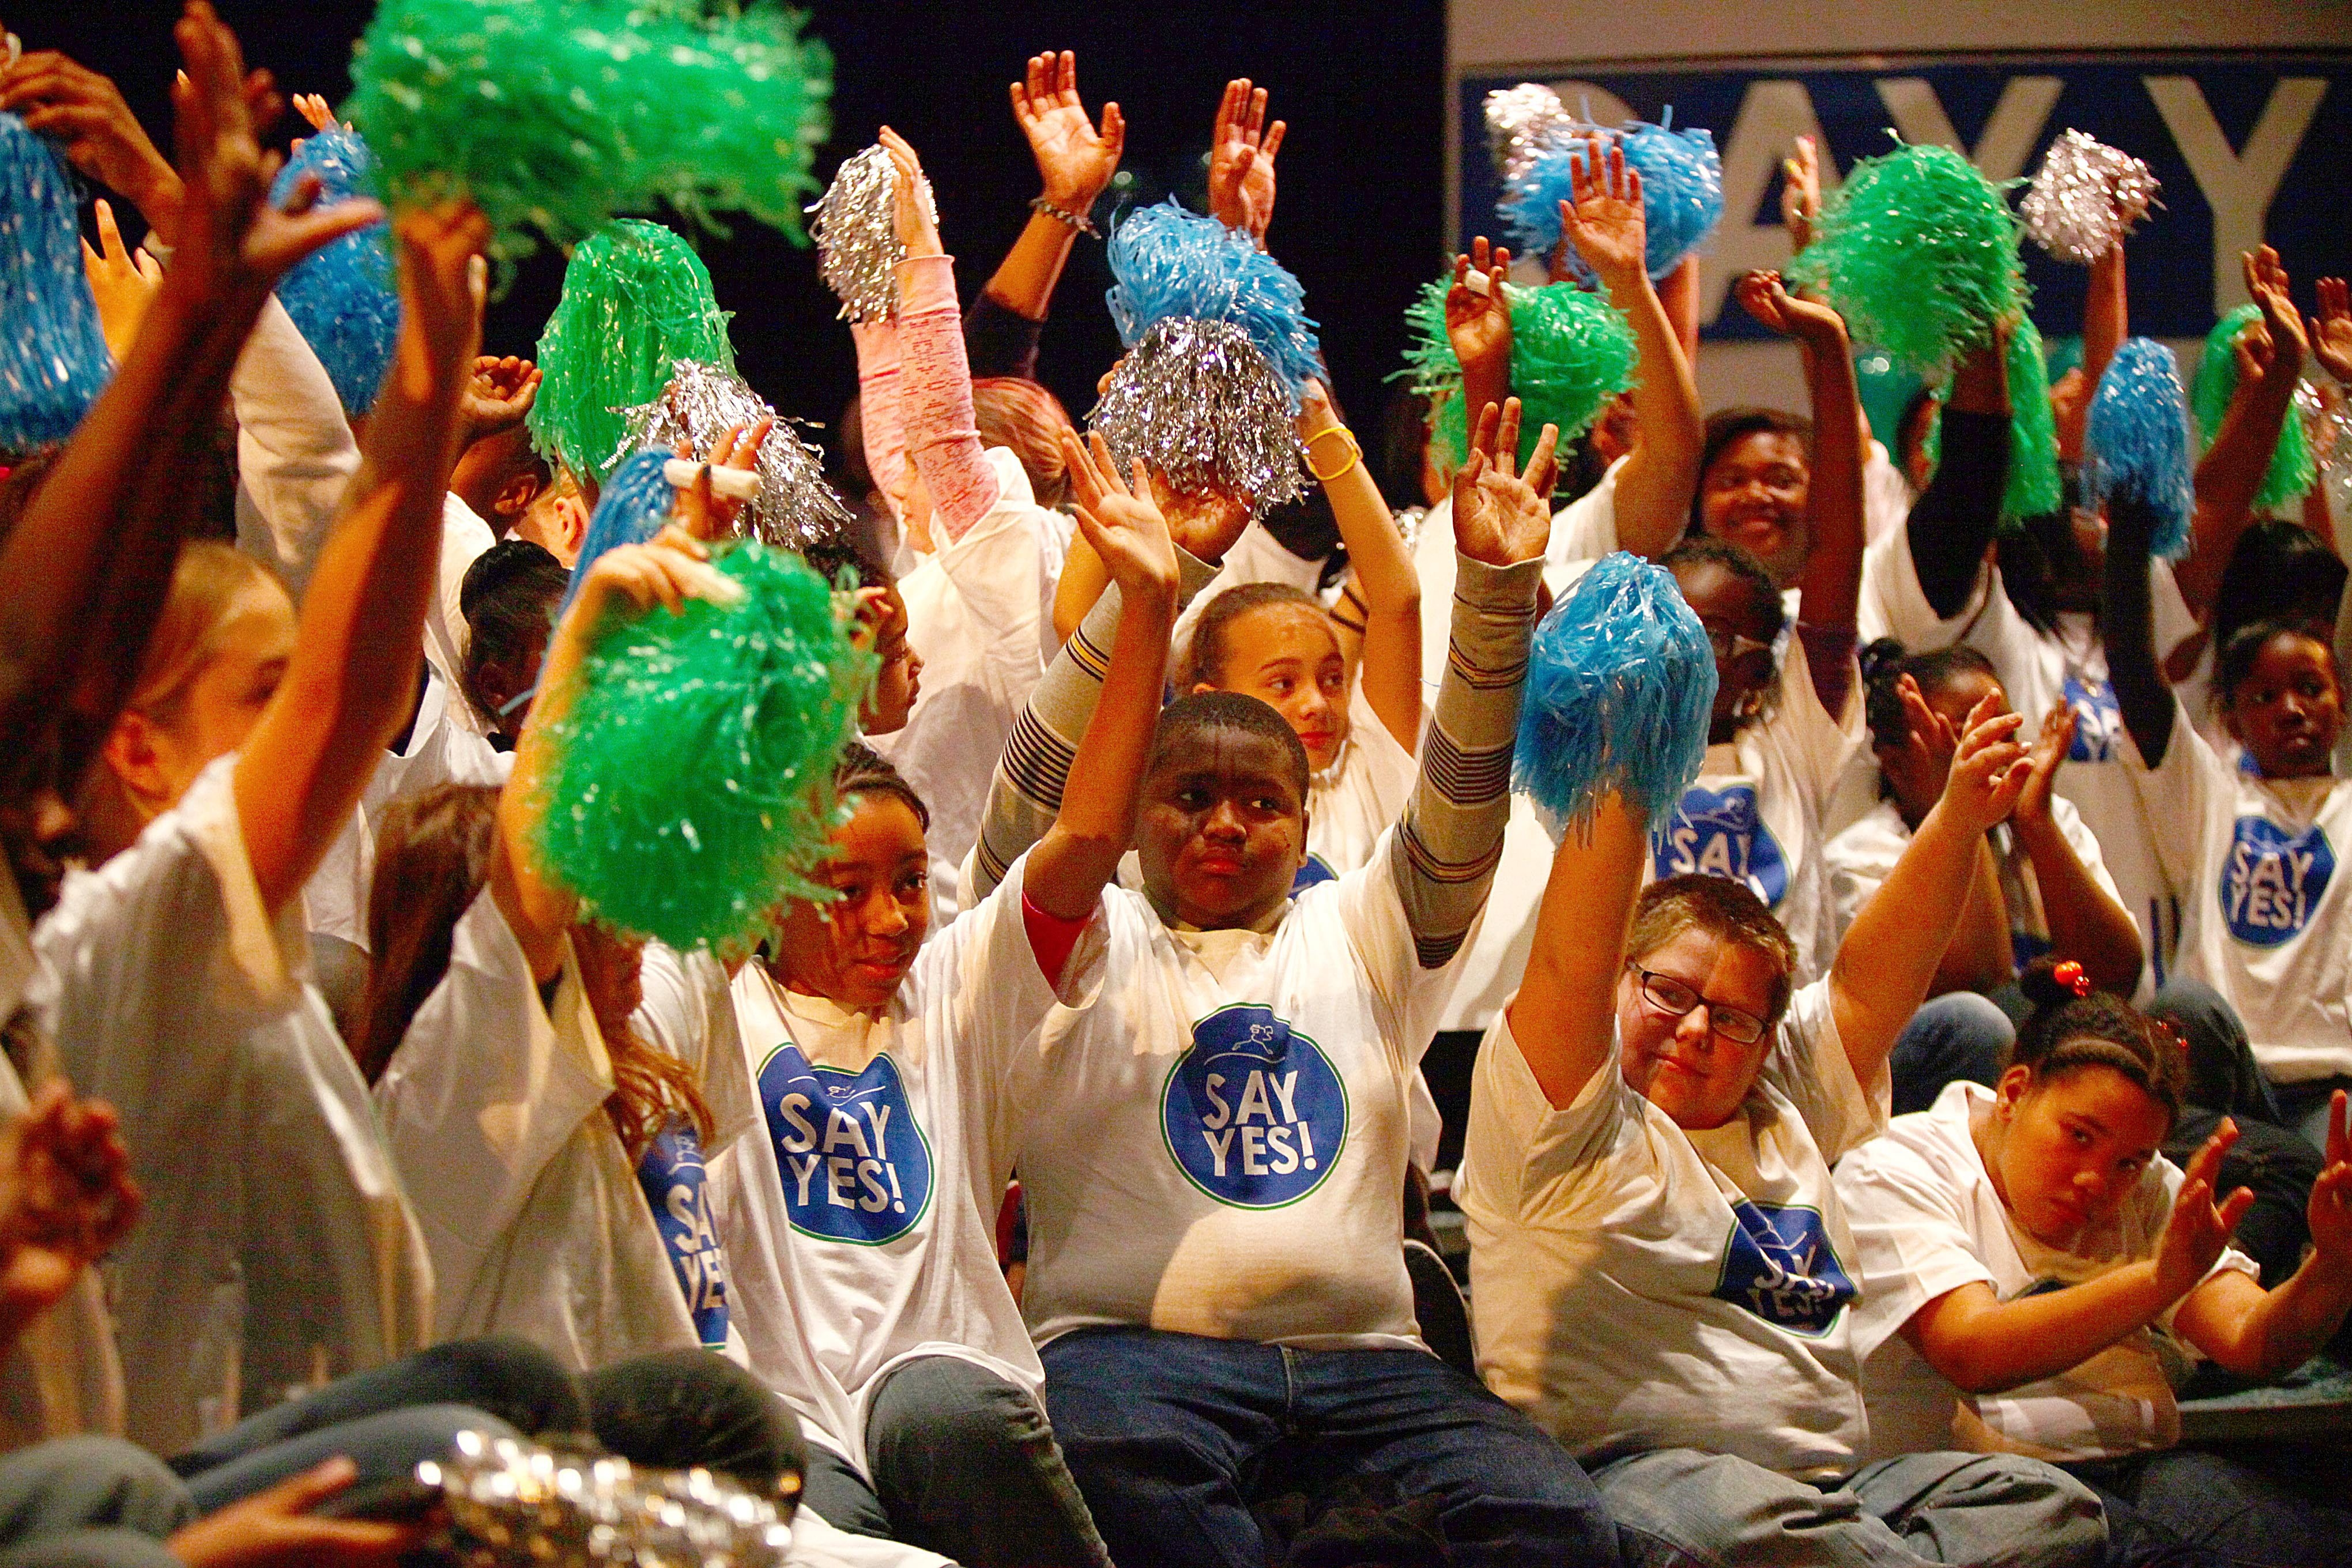 Say Yes came to Buffalo in December 2011 to much fanfare. (Robert Kirkham/Buffalo News file photo)